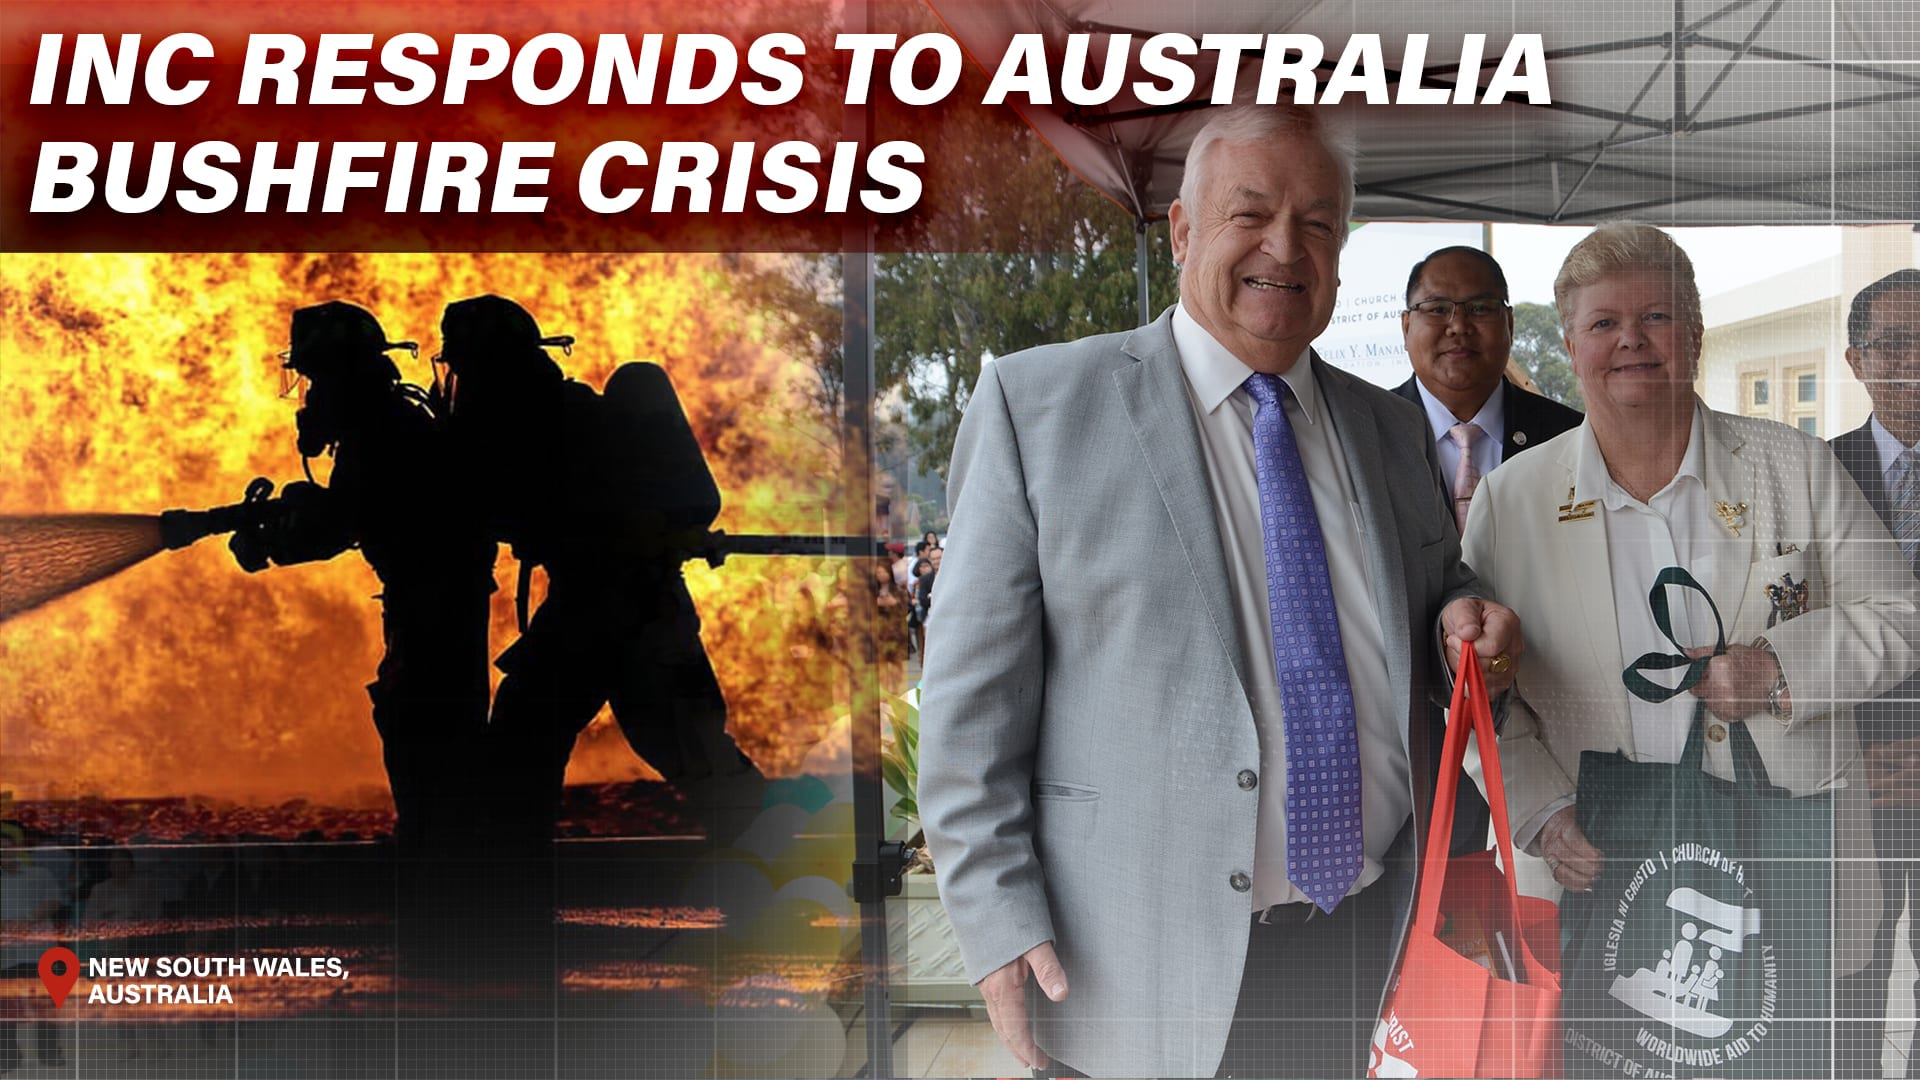 INC Responds to Australia Bushfire Crisis